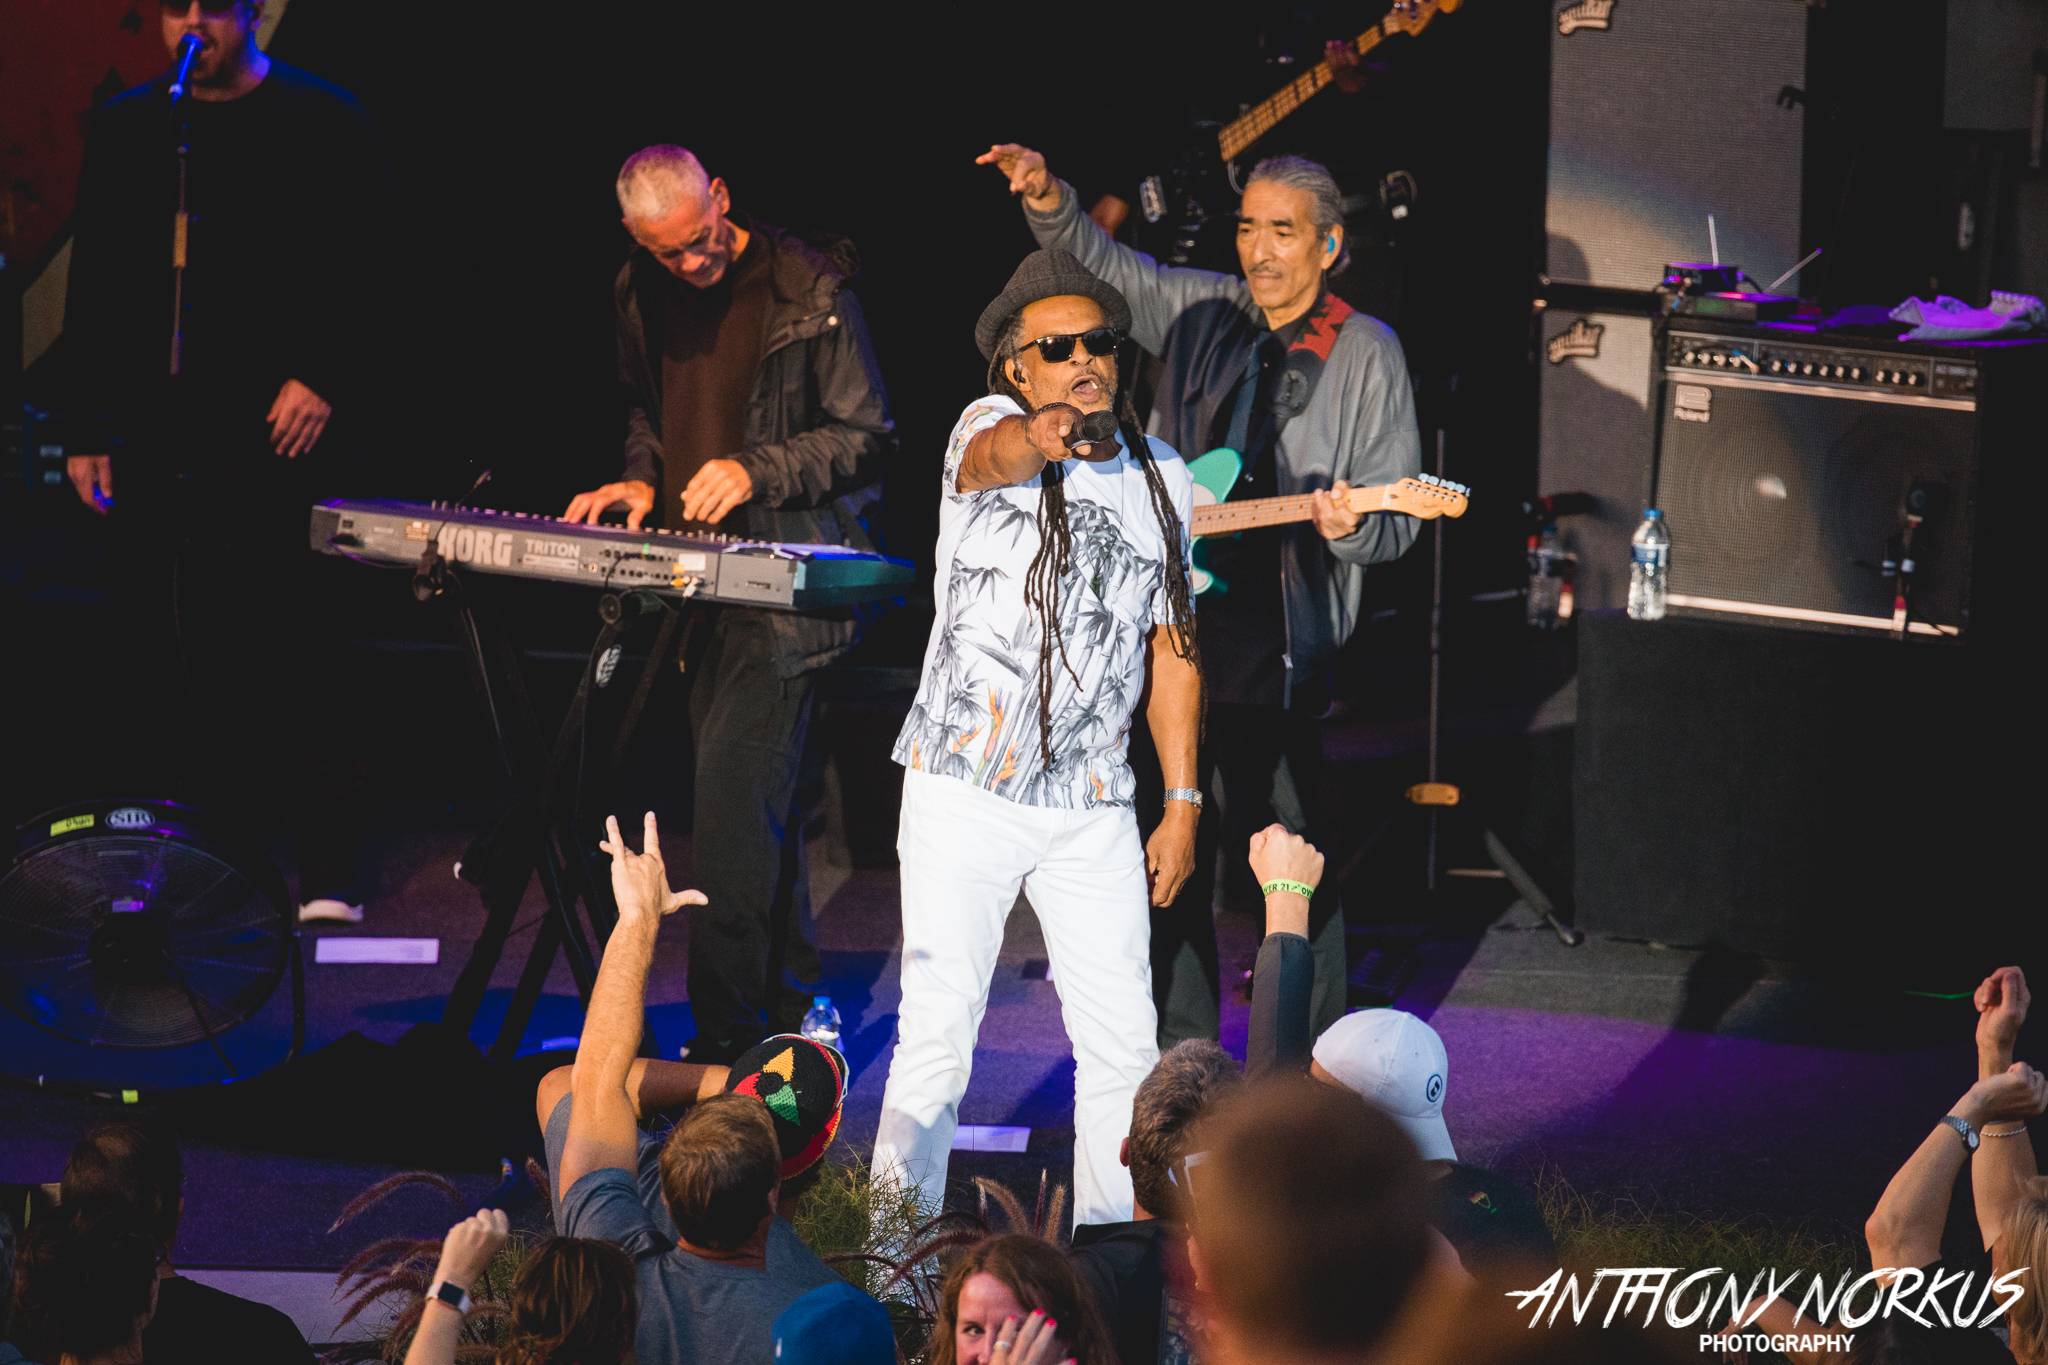 Ub40 Closes Out Meijer Gardens Concert Season With Reggae And Dance Fueled Nostalgia